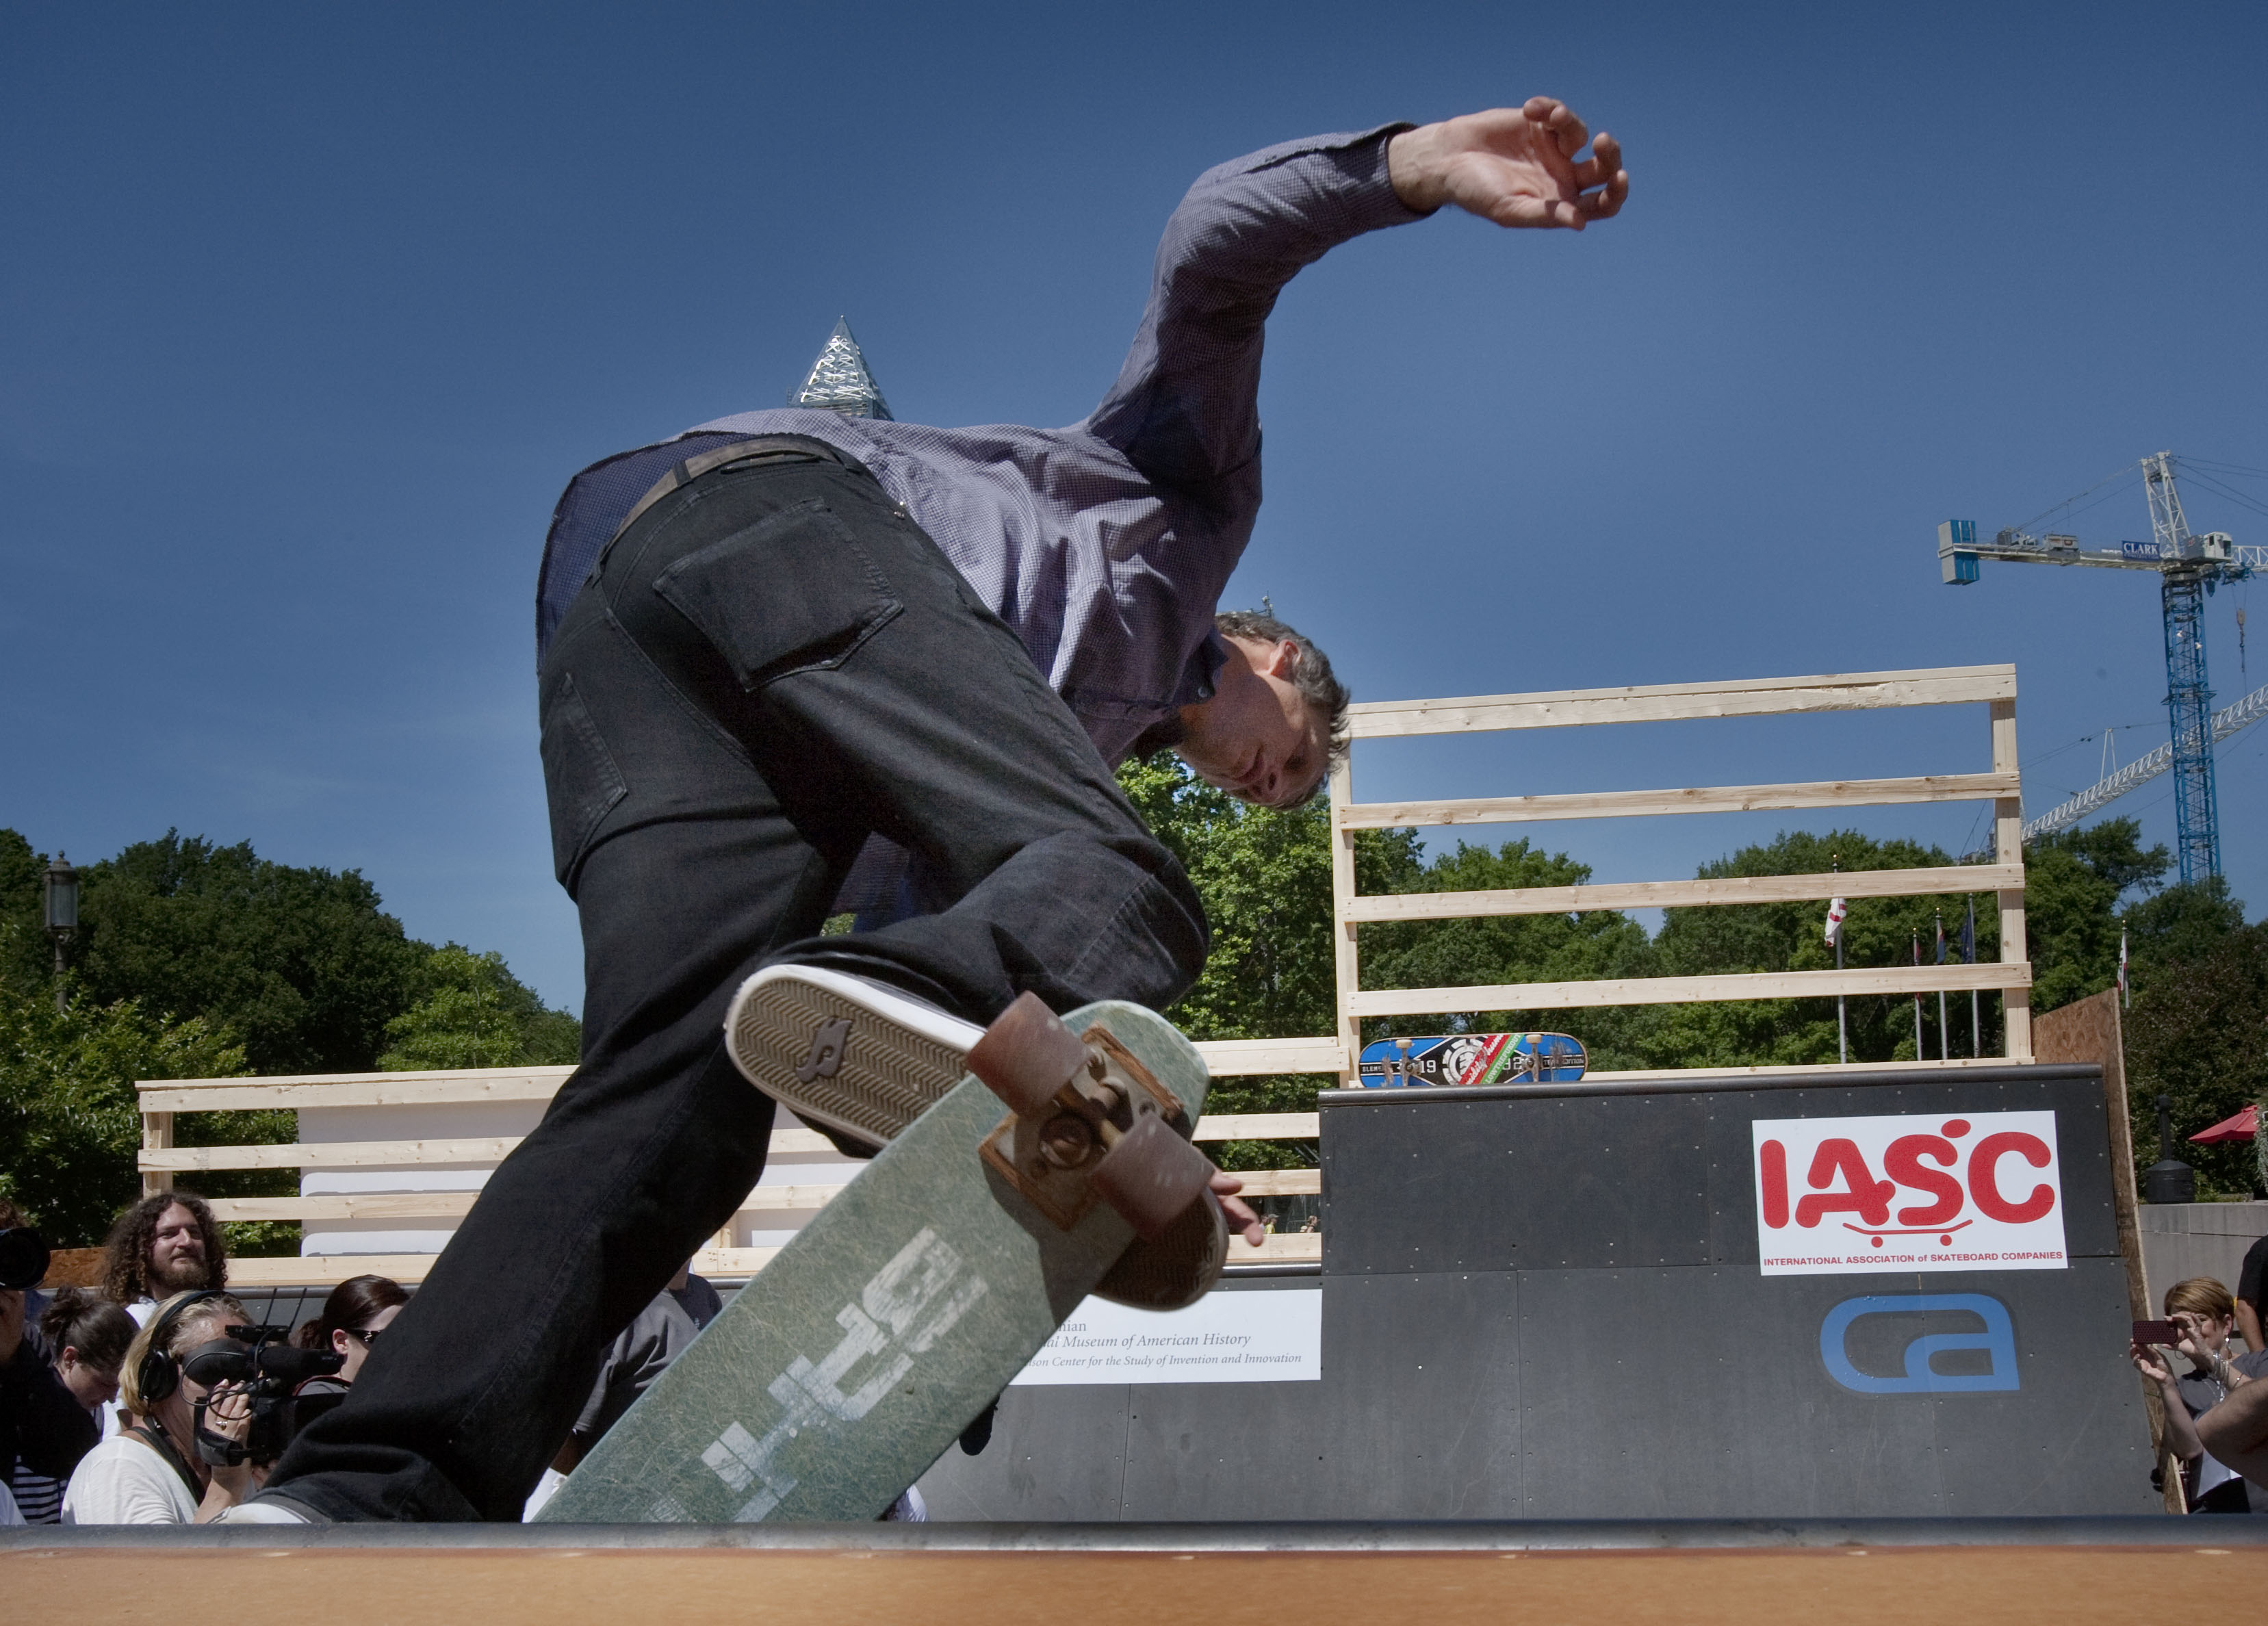 Tony Hawk takes a last ride on his first skateboard, given to him by his brother, Steve, with whom he donated it to the Smithsonian's collections.